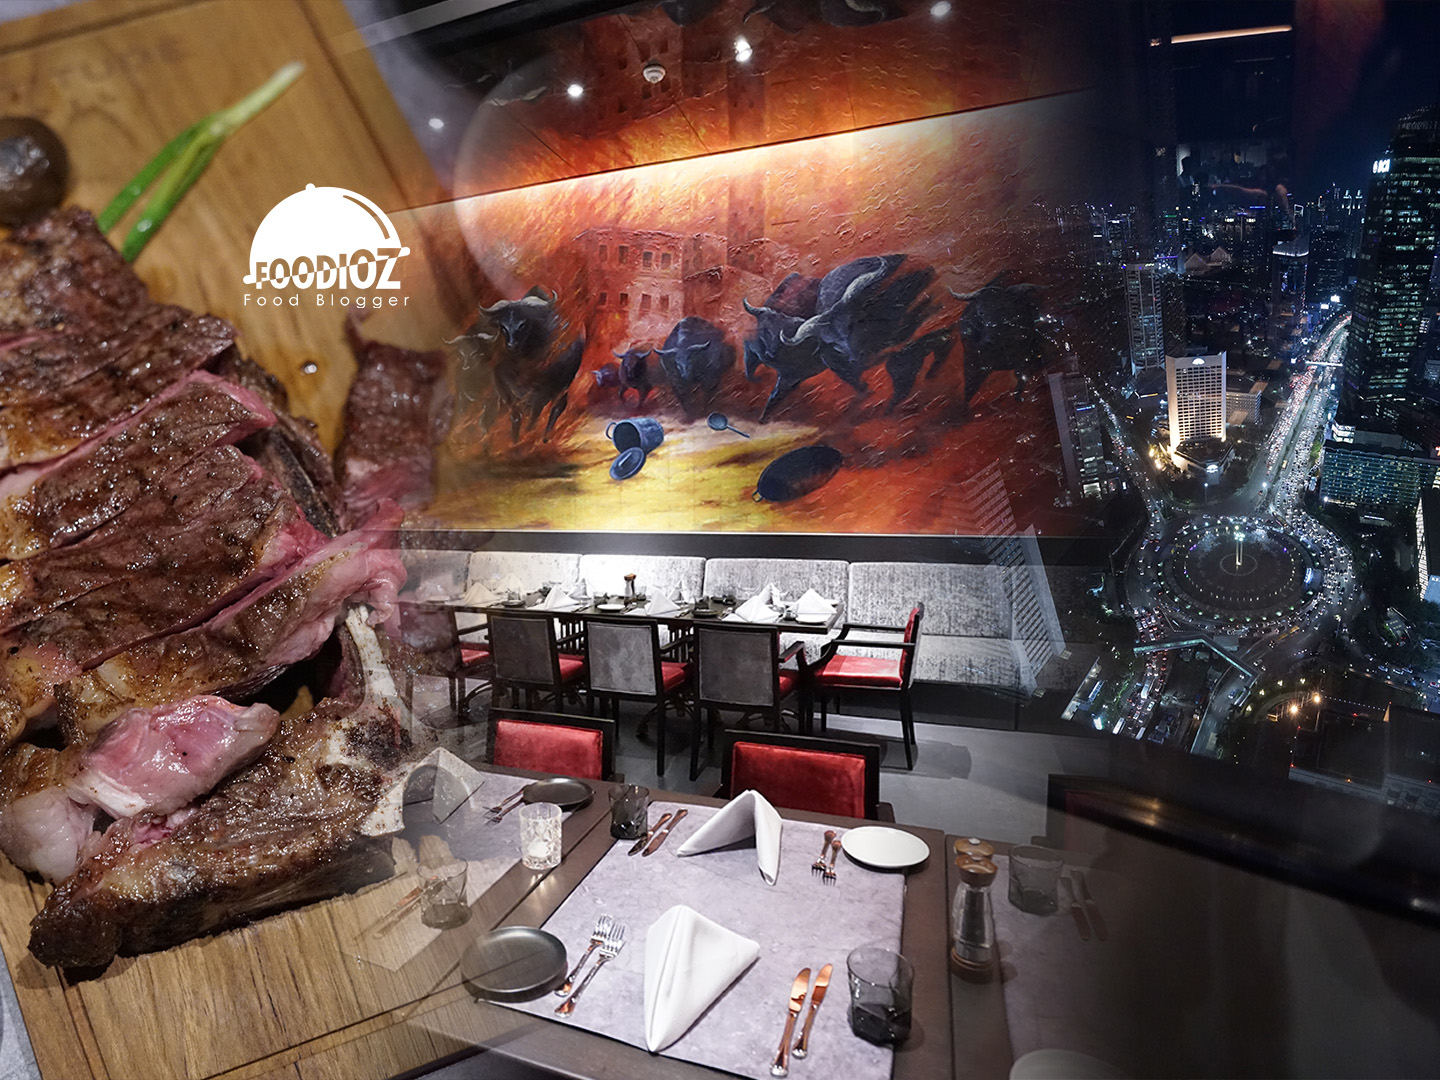 The place is nicely furnished, the lights are dimmed, the waitress are friendly. Altitude Grill The Plaza Jakarta Pusat